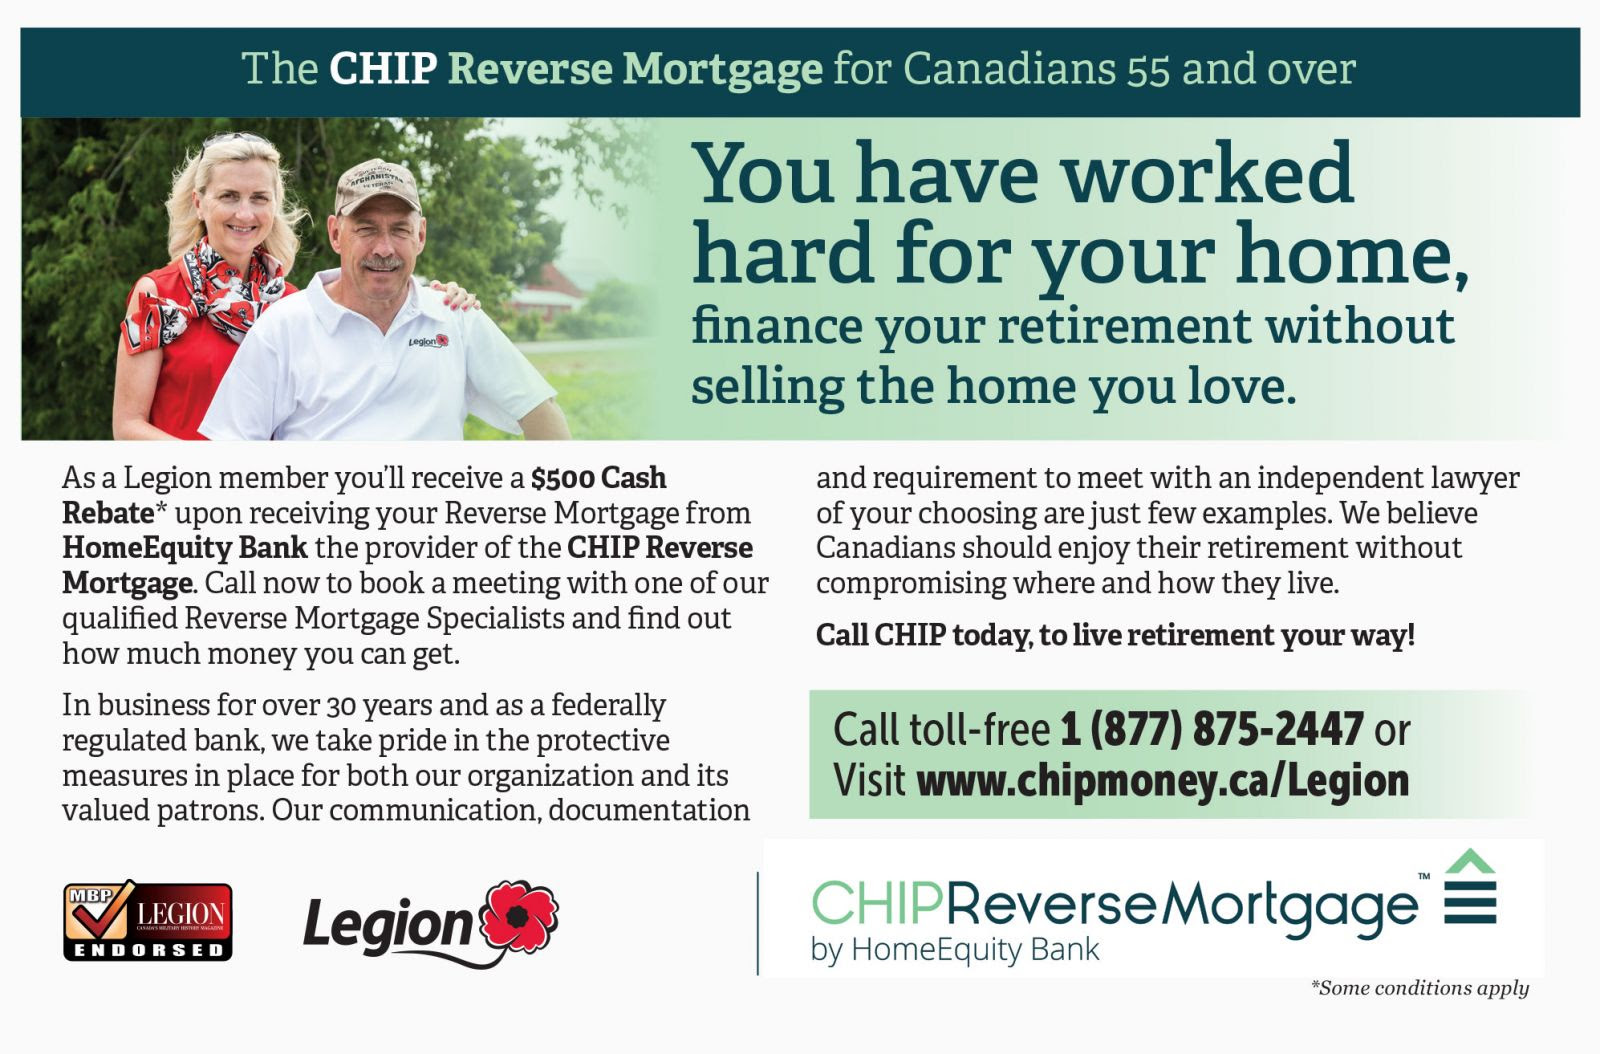 Home Equity - CHIP Reverse Mortgage